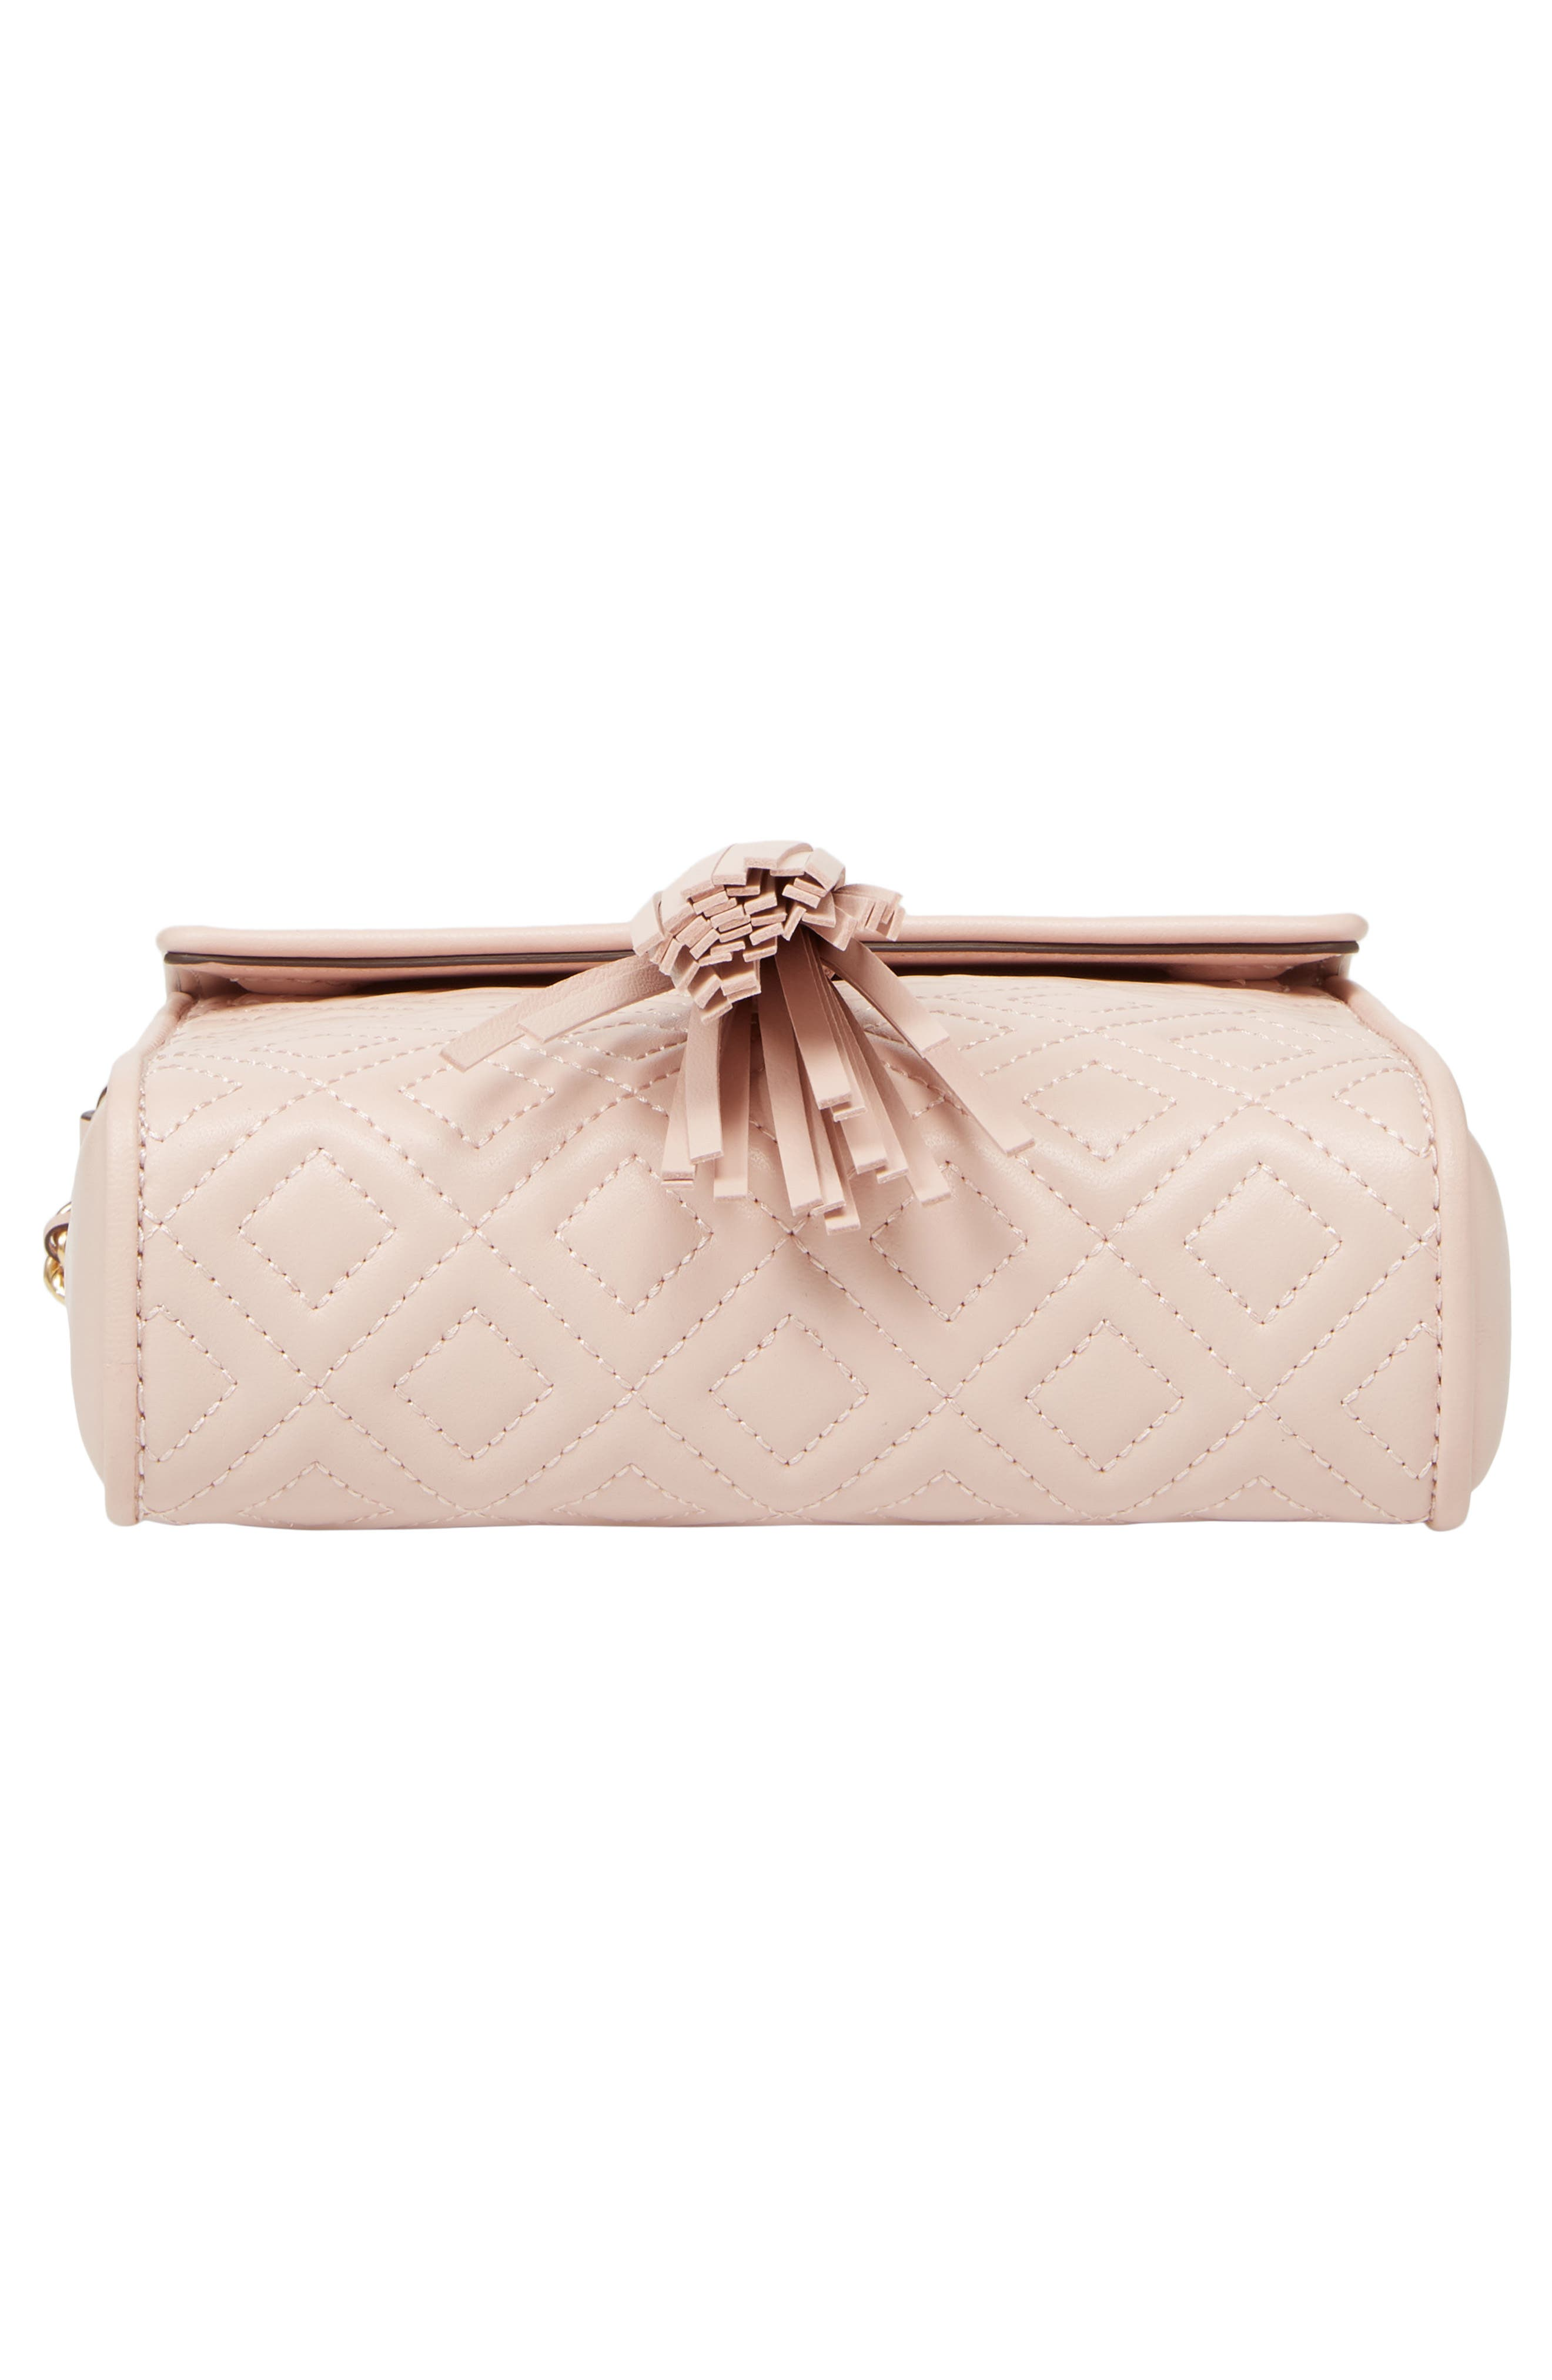 Fleming Quilted Leather Crossbody Bag,                             Alternate thumbnail 7, color,                             Shell Pink